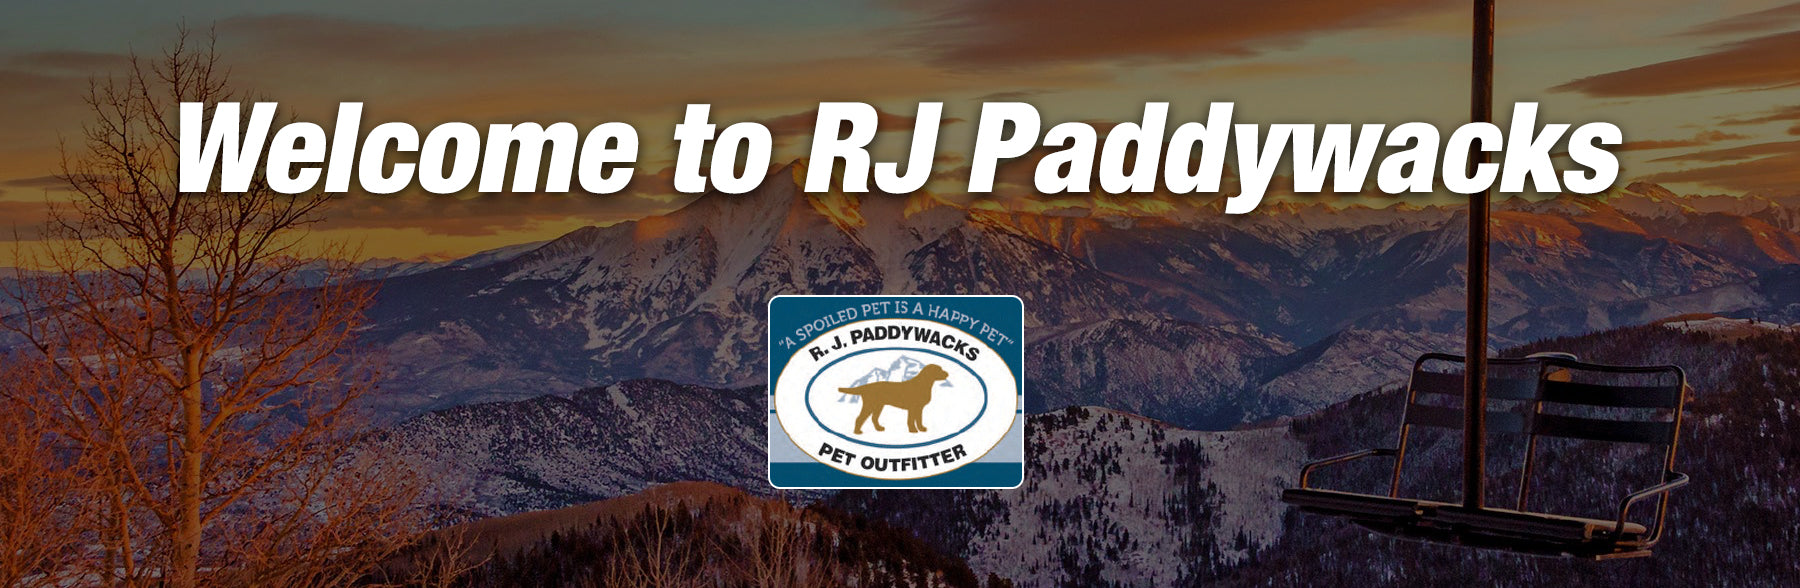 welcome to RJ paddywacks